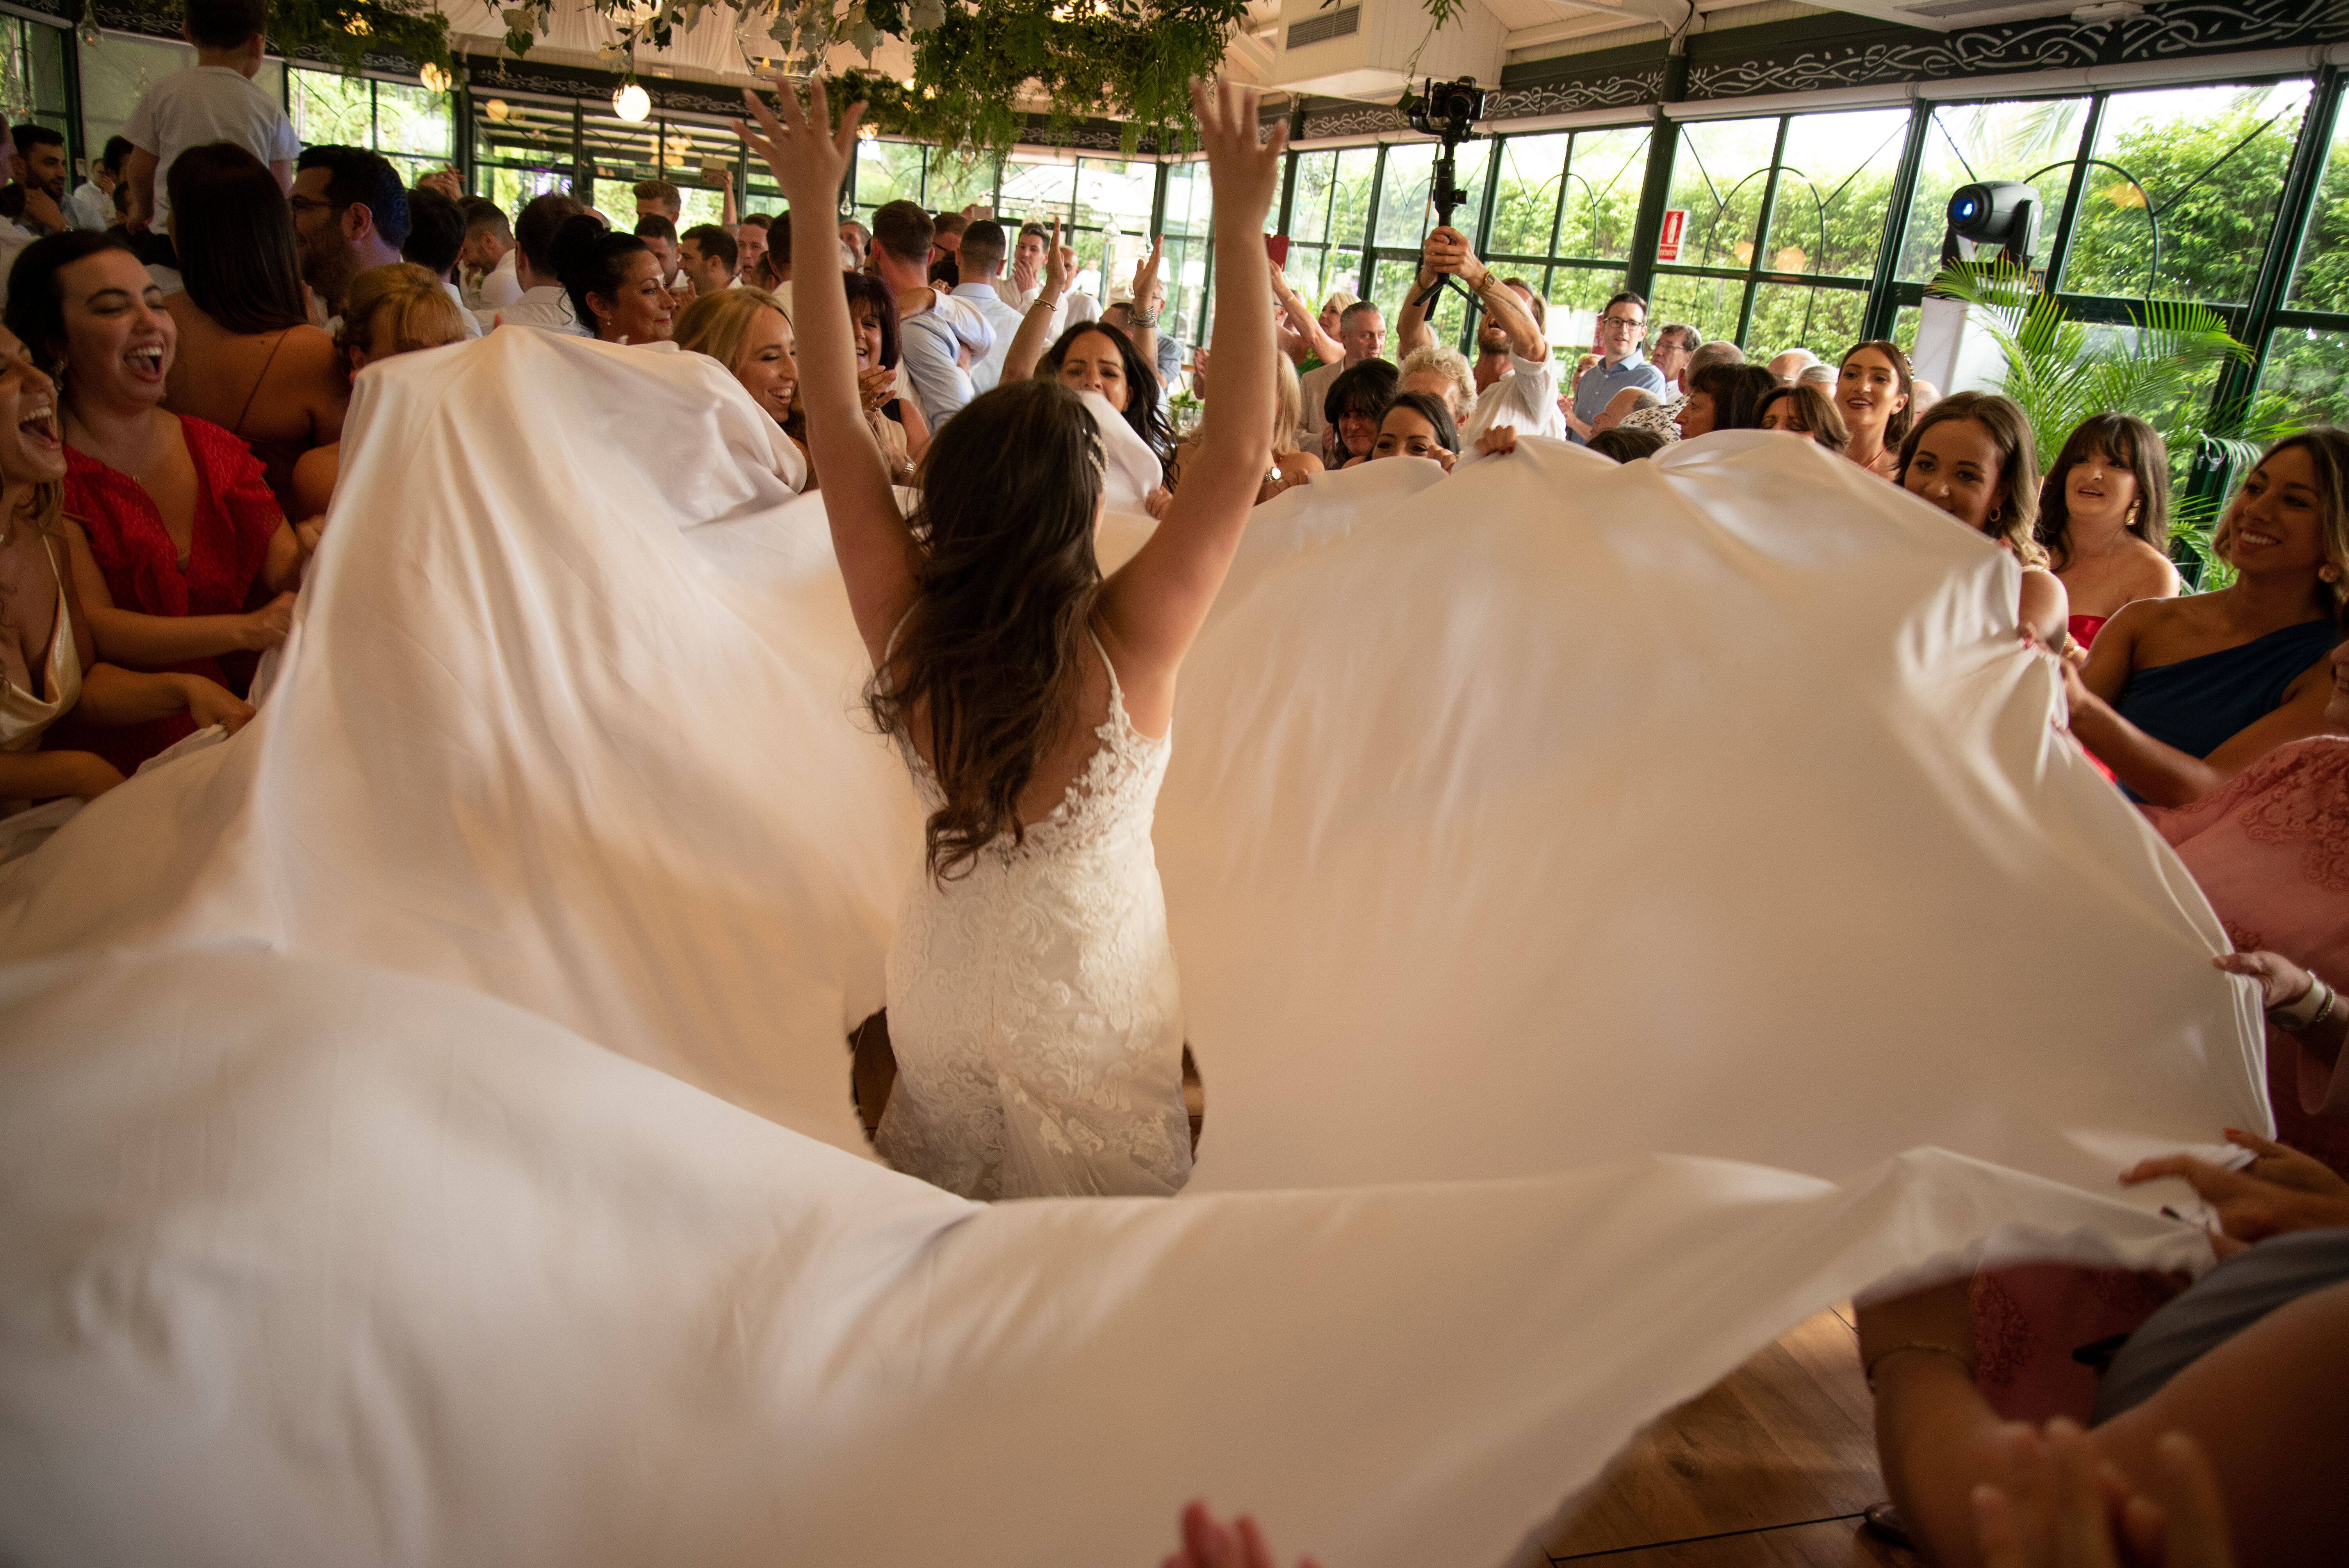 The bride dancing in her gorgeous gown - Jeremy Standley Photographer